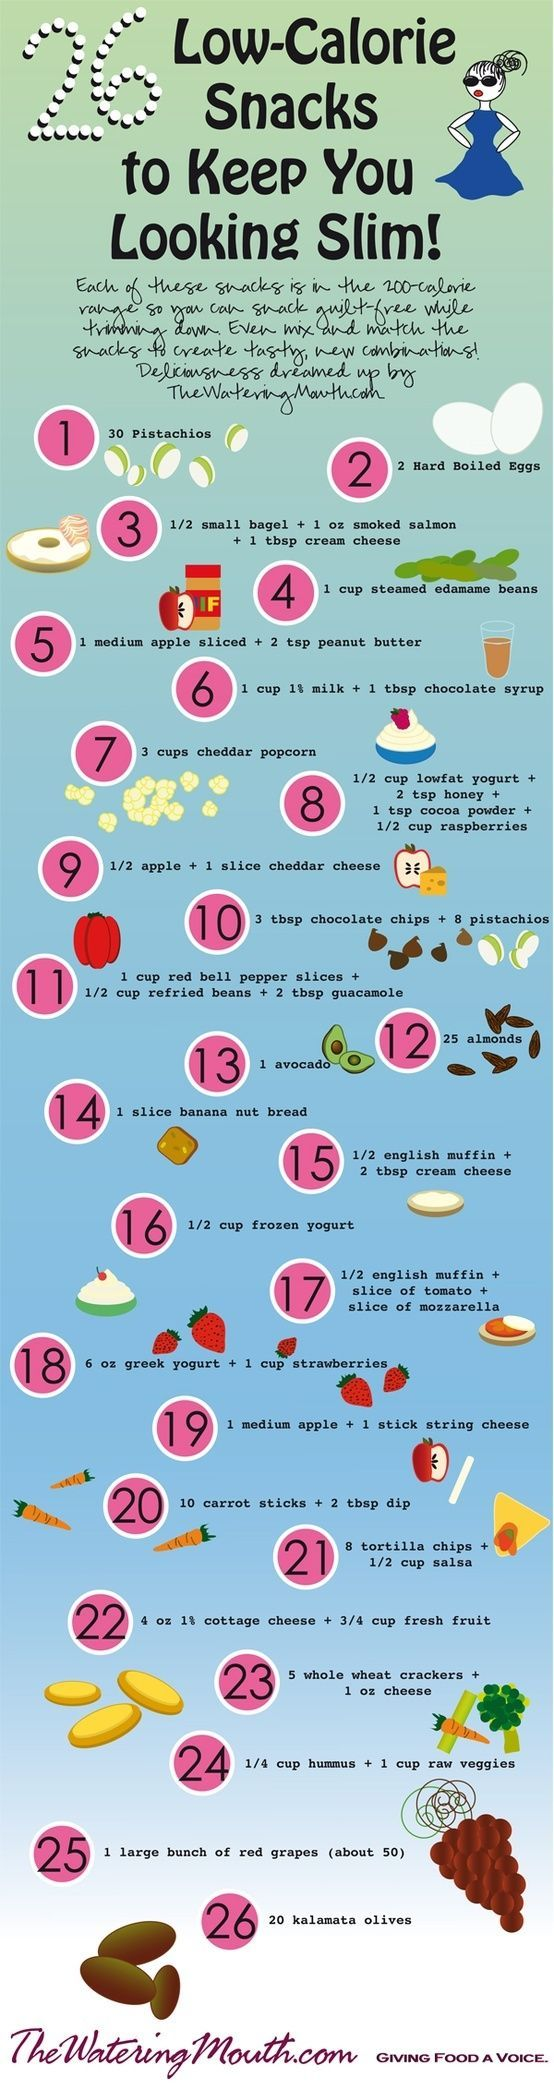 26 Low Calorie Snacks to Keep You Looking Trim! (Although I can't/won't eat about a third of these suggestions)26 Low Calorie Snacks to Keep You Looking Trim! (Although I can't/won't eat about a third of these suggestions)